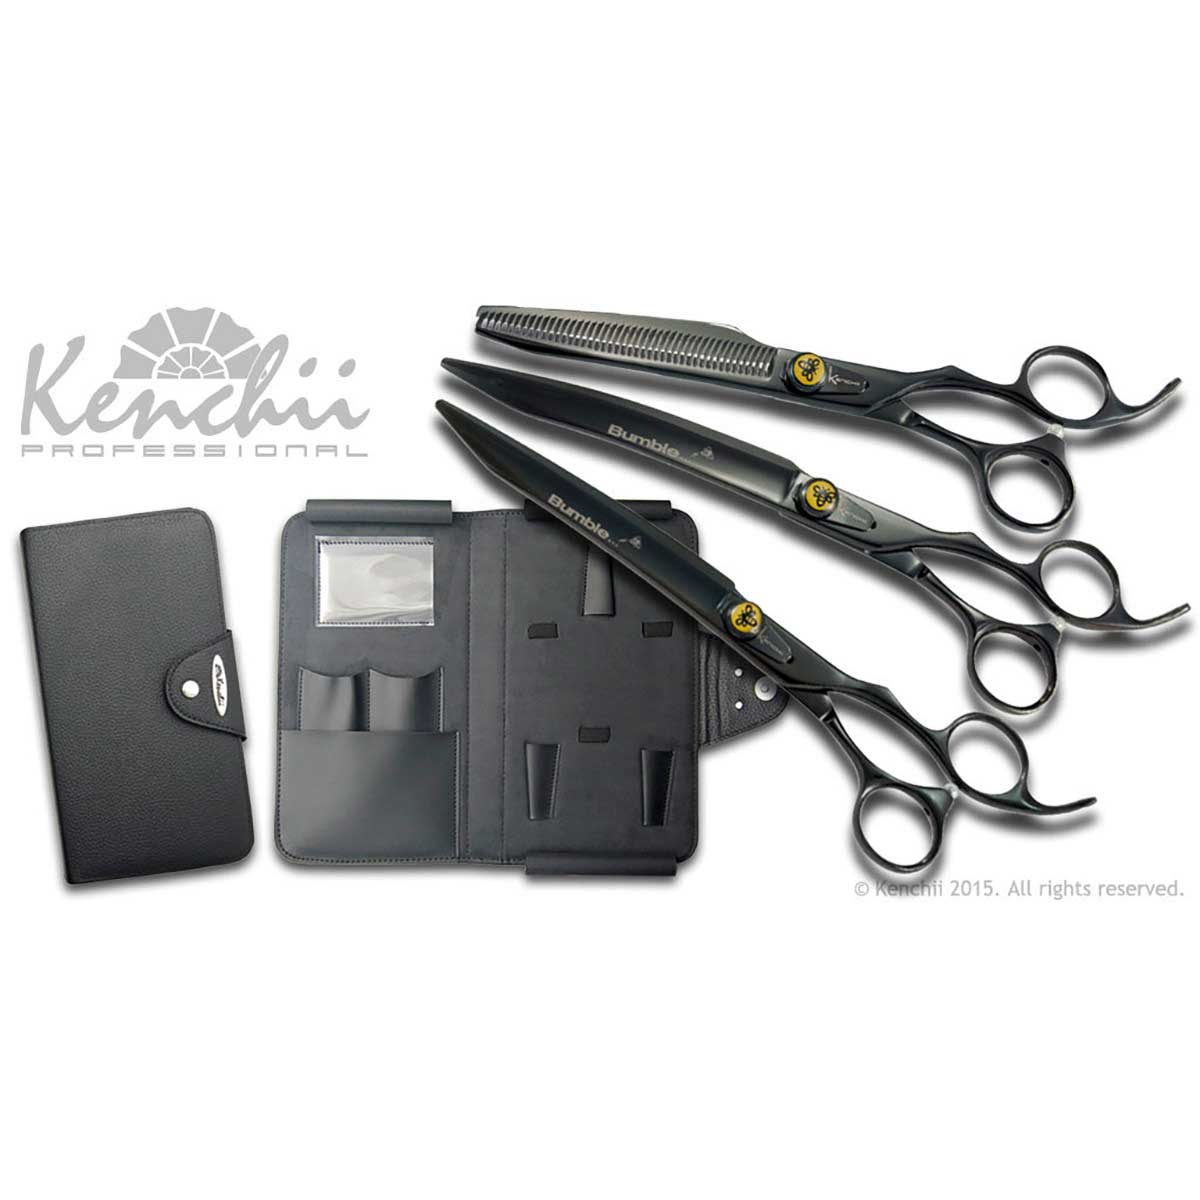 Kenchii Bumble Bee 8 in Shear Set - Includes Bumble Bee 8 in Straight Shear, 8 in Curved Shear and 44 Tooth 7 in Thinner.